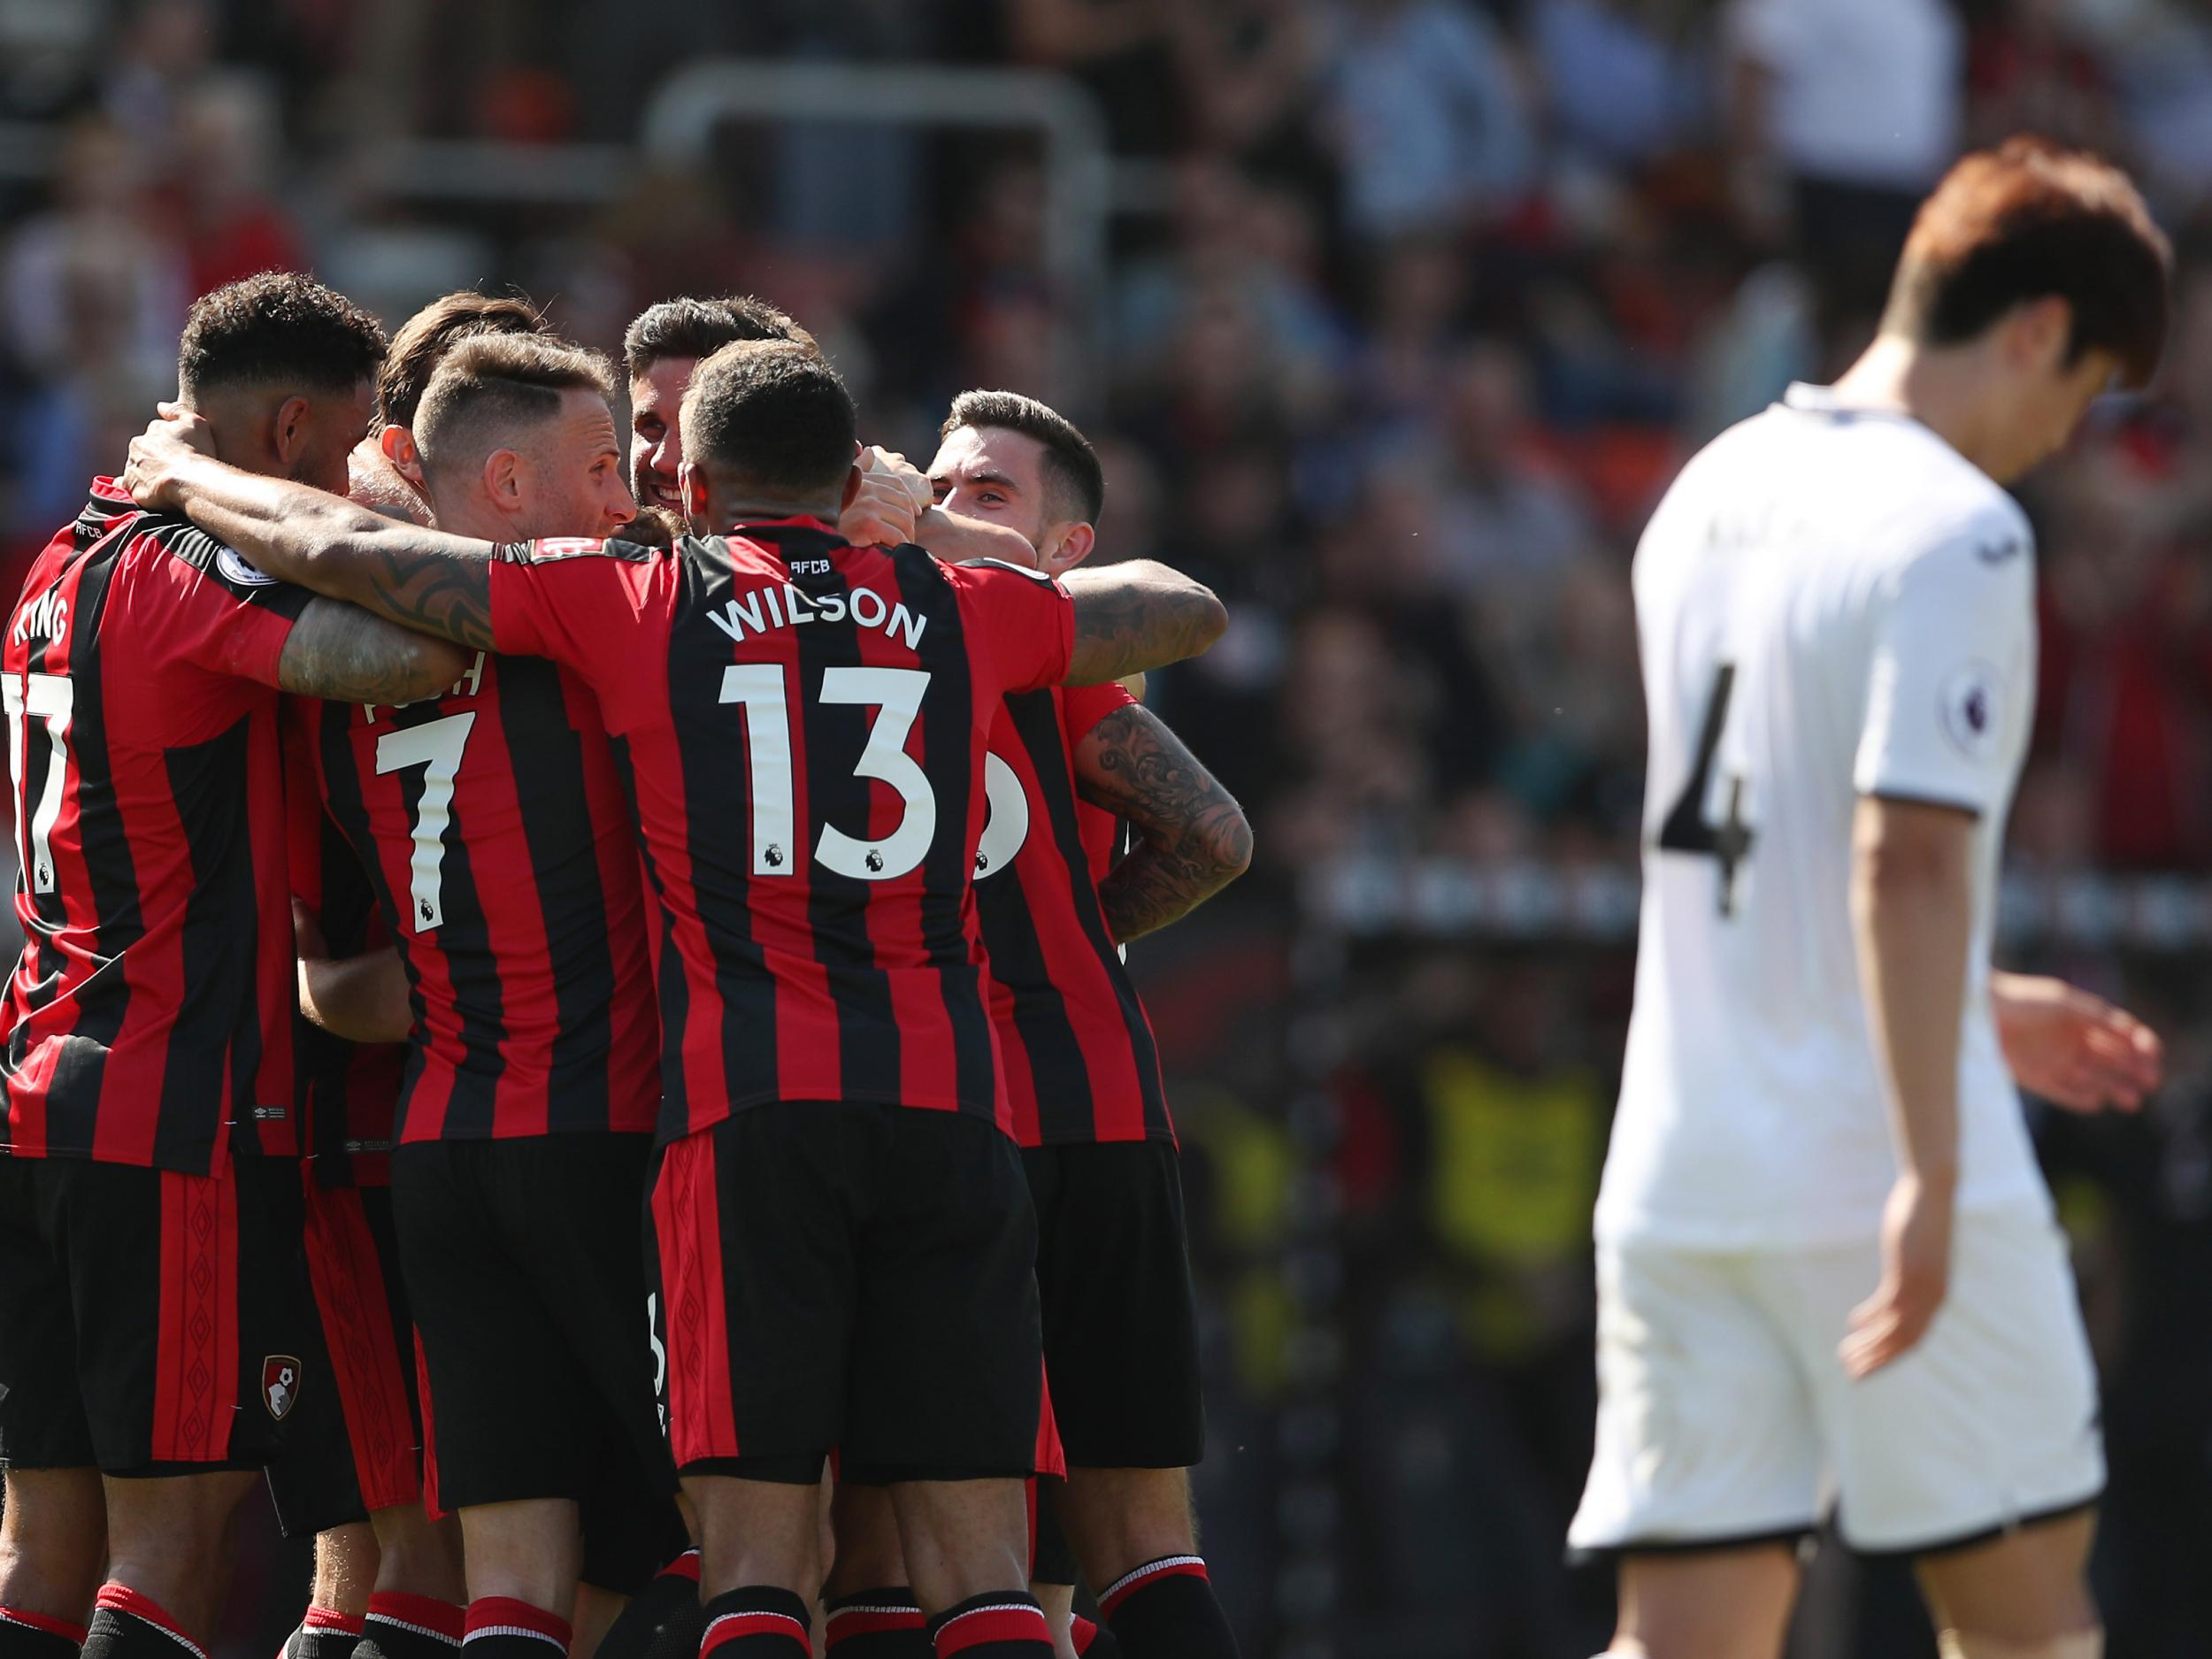 Swansea remain in deep relegation trouble as Bournemouth earn all three points